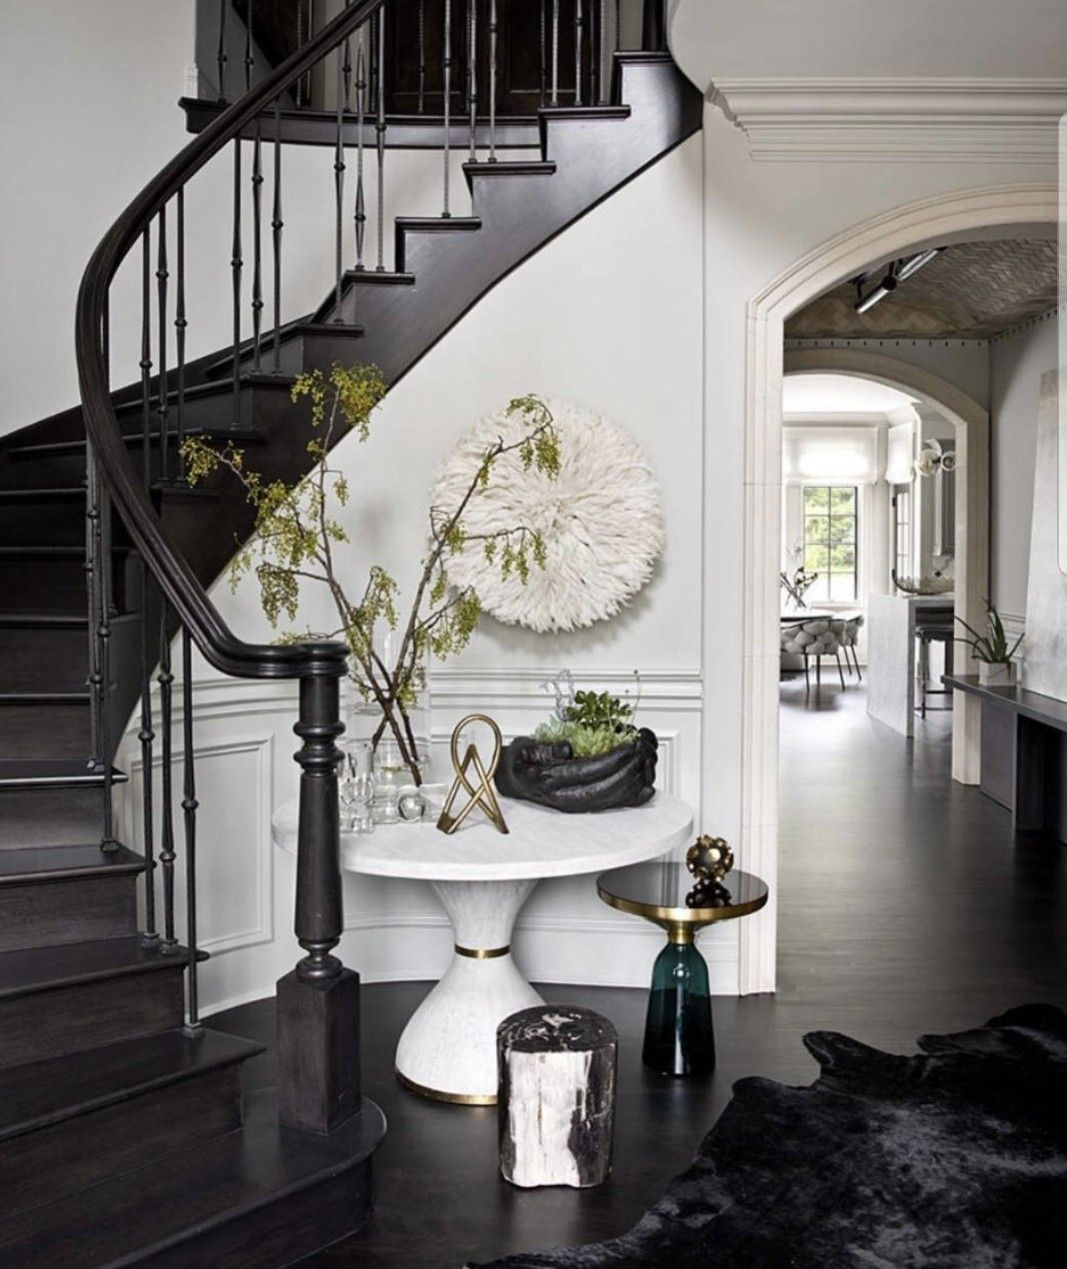 20 Excellent Traditional Staircases Design Ideas: House Design, Urban Decor, Home